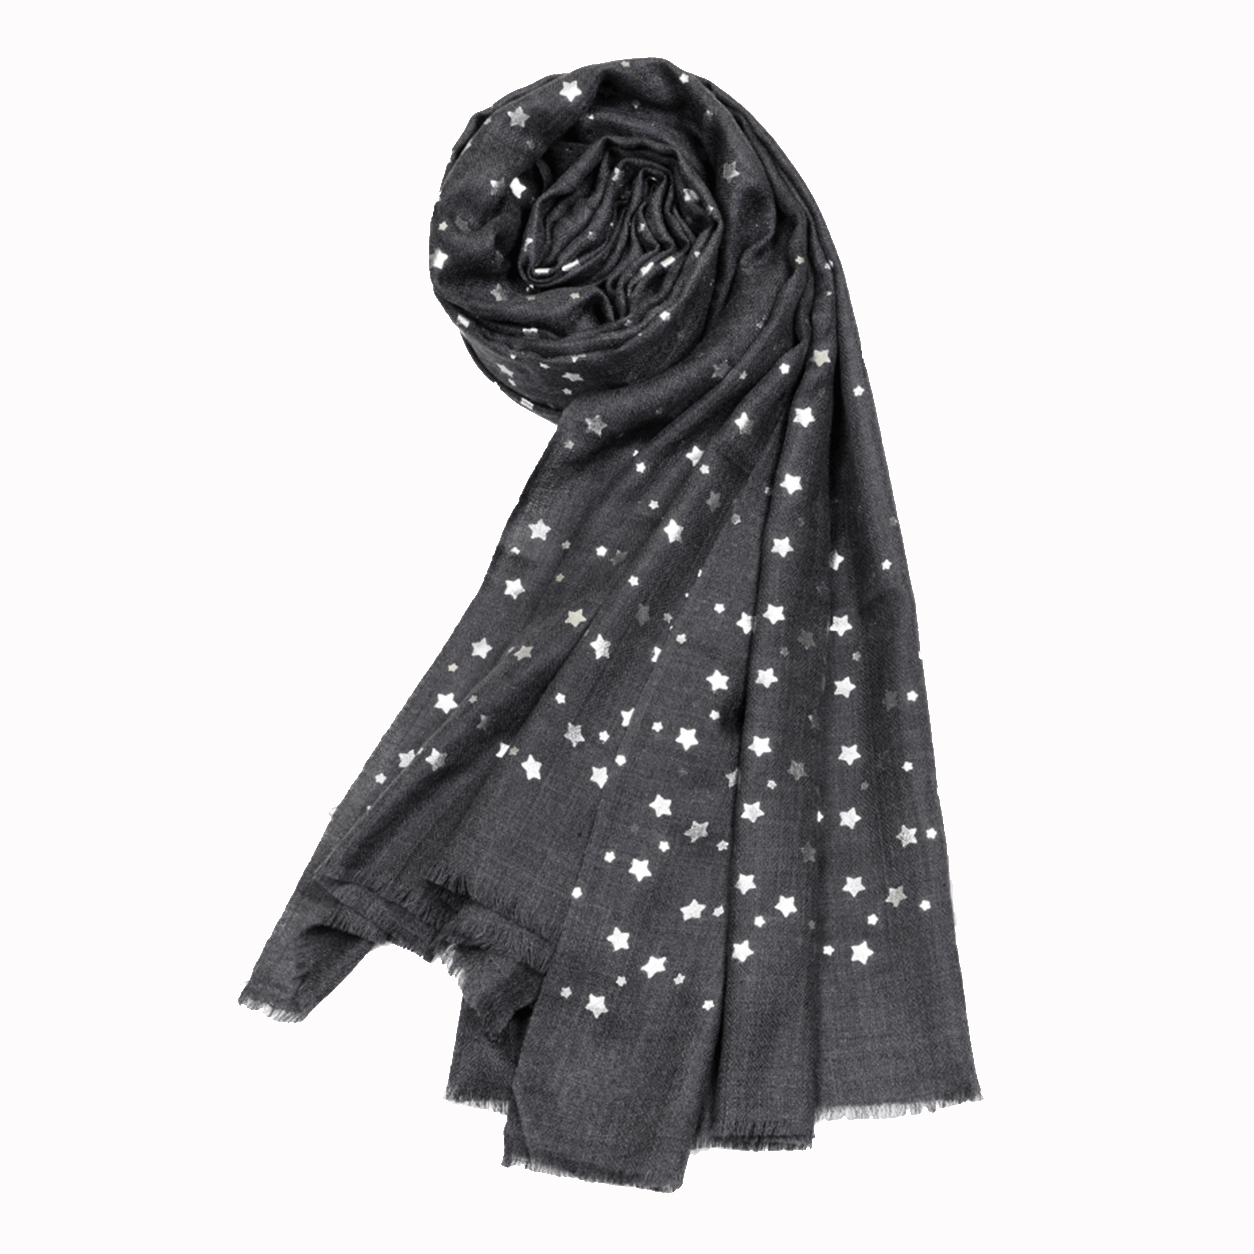 Merino Wool Star Shawl - Agent Grey